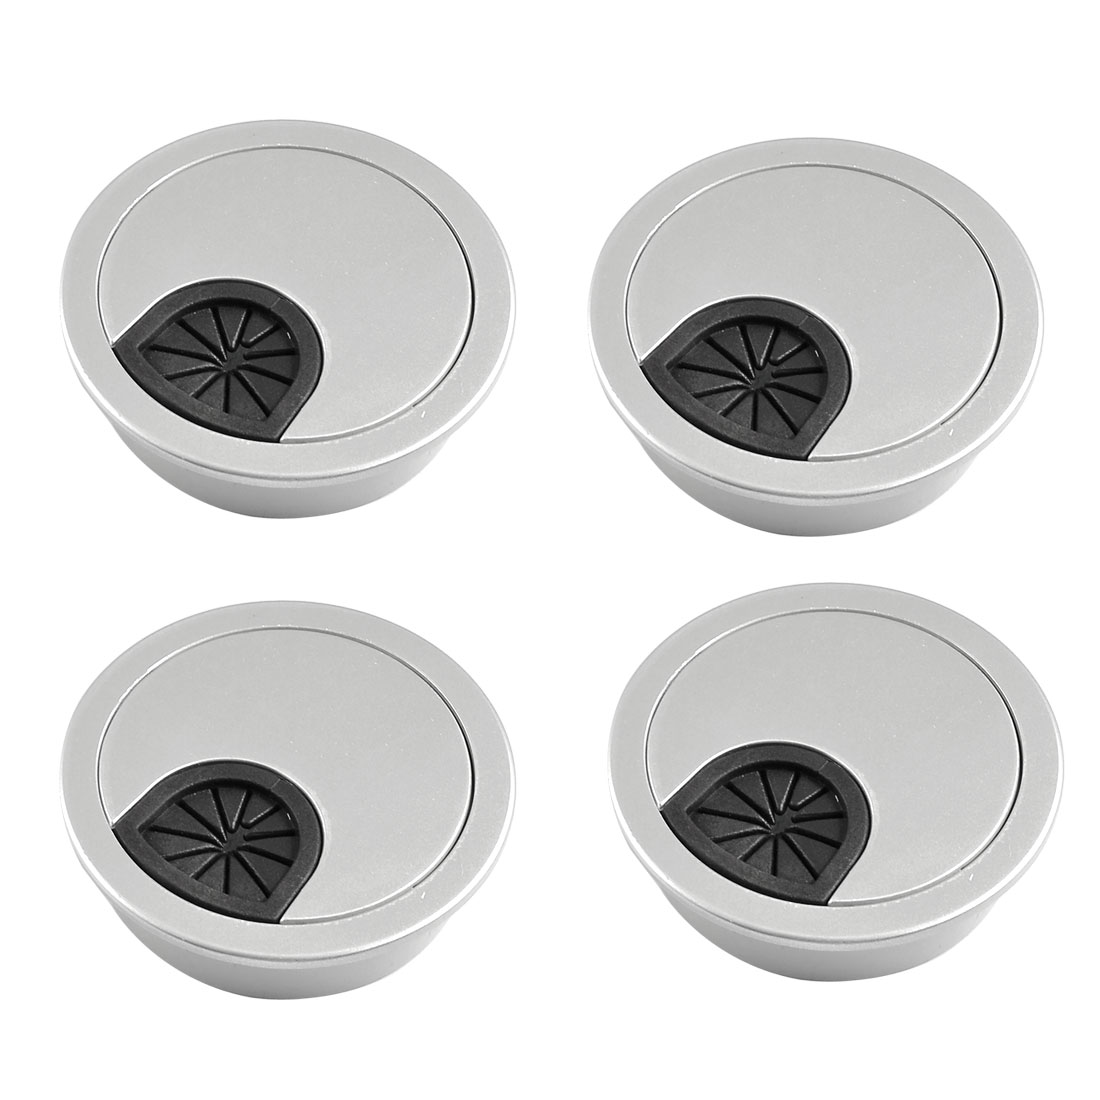 4 Pcs Round Shape Silver Tone Plastic Desk Grommet Table Hole Cover